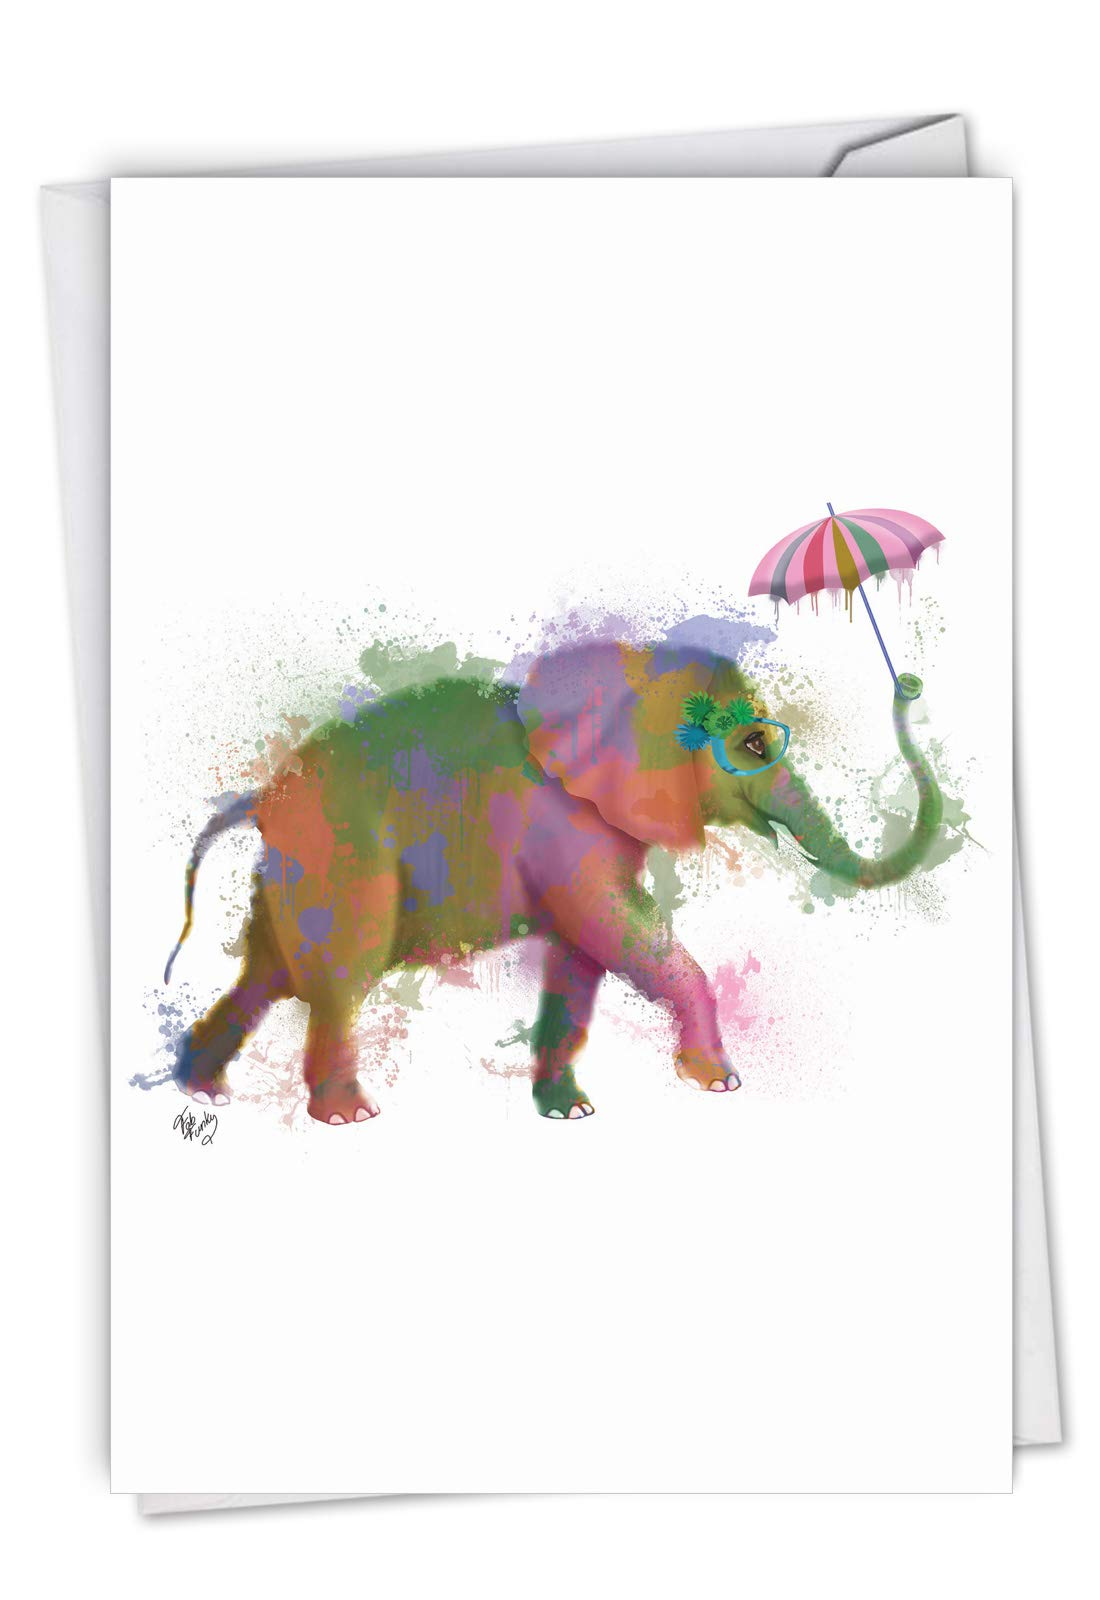 The Best Card Company, Funky Rainbow Wildlife Elephant - Belated Birthday Card with Envelope - Watercolor Bday Greeting C4948JBDG-BE